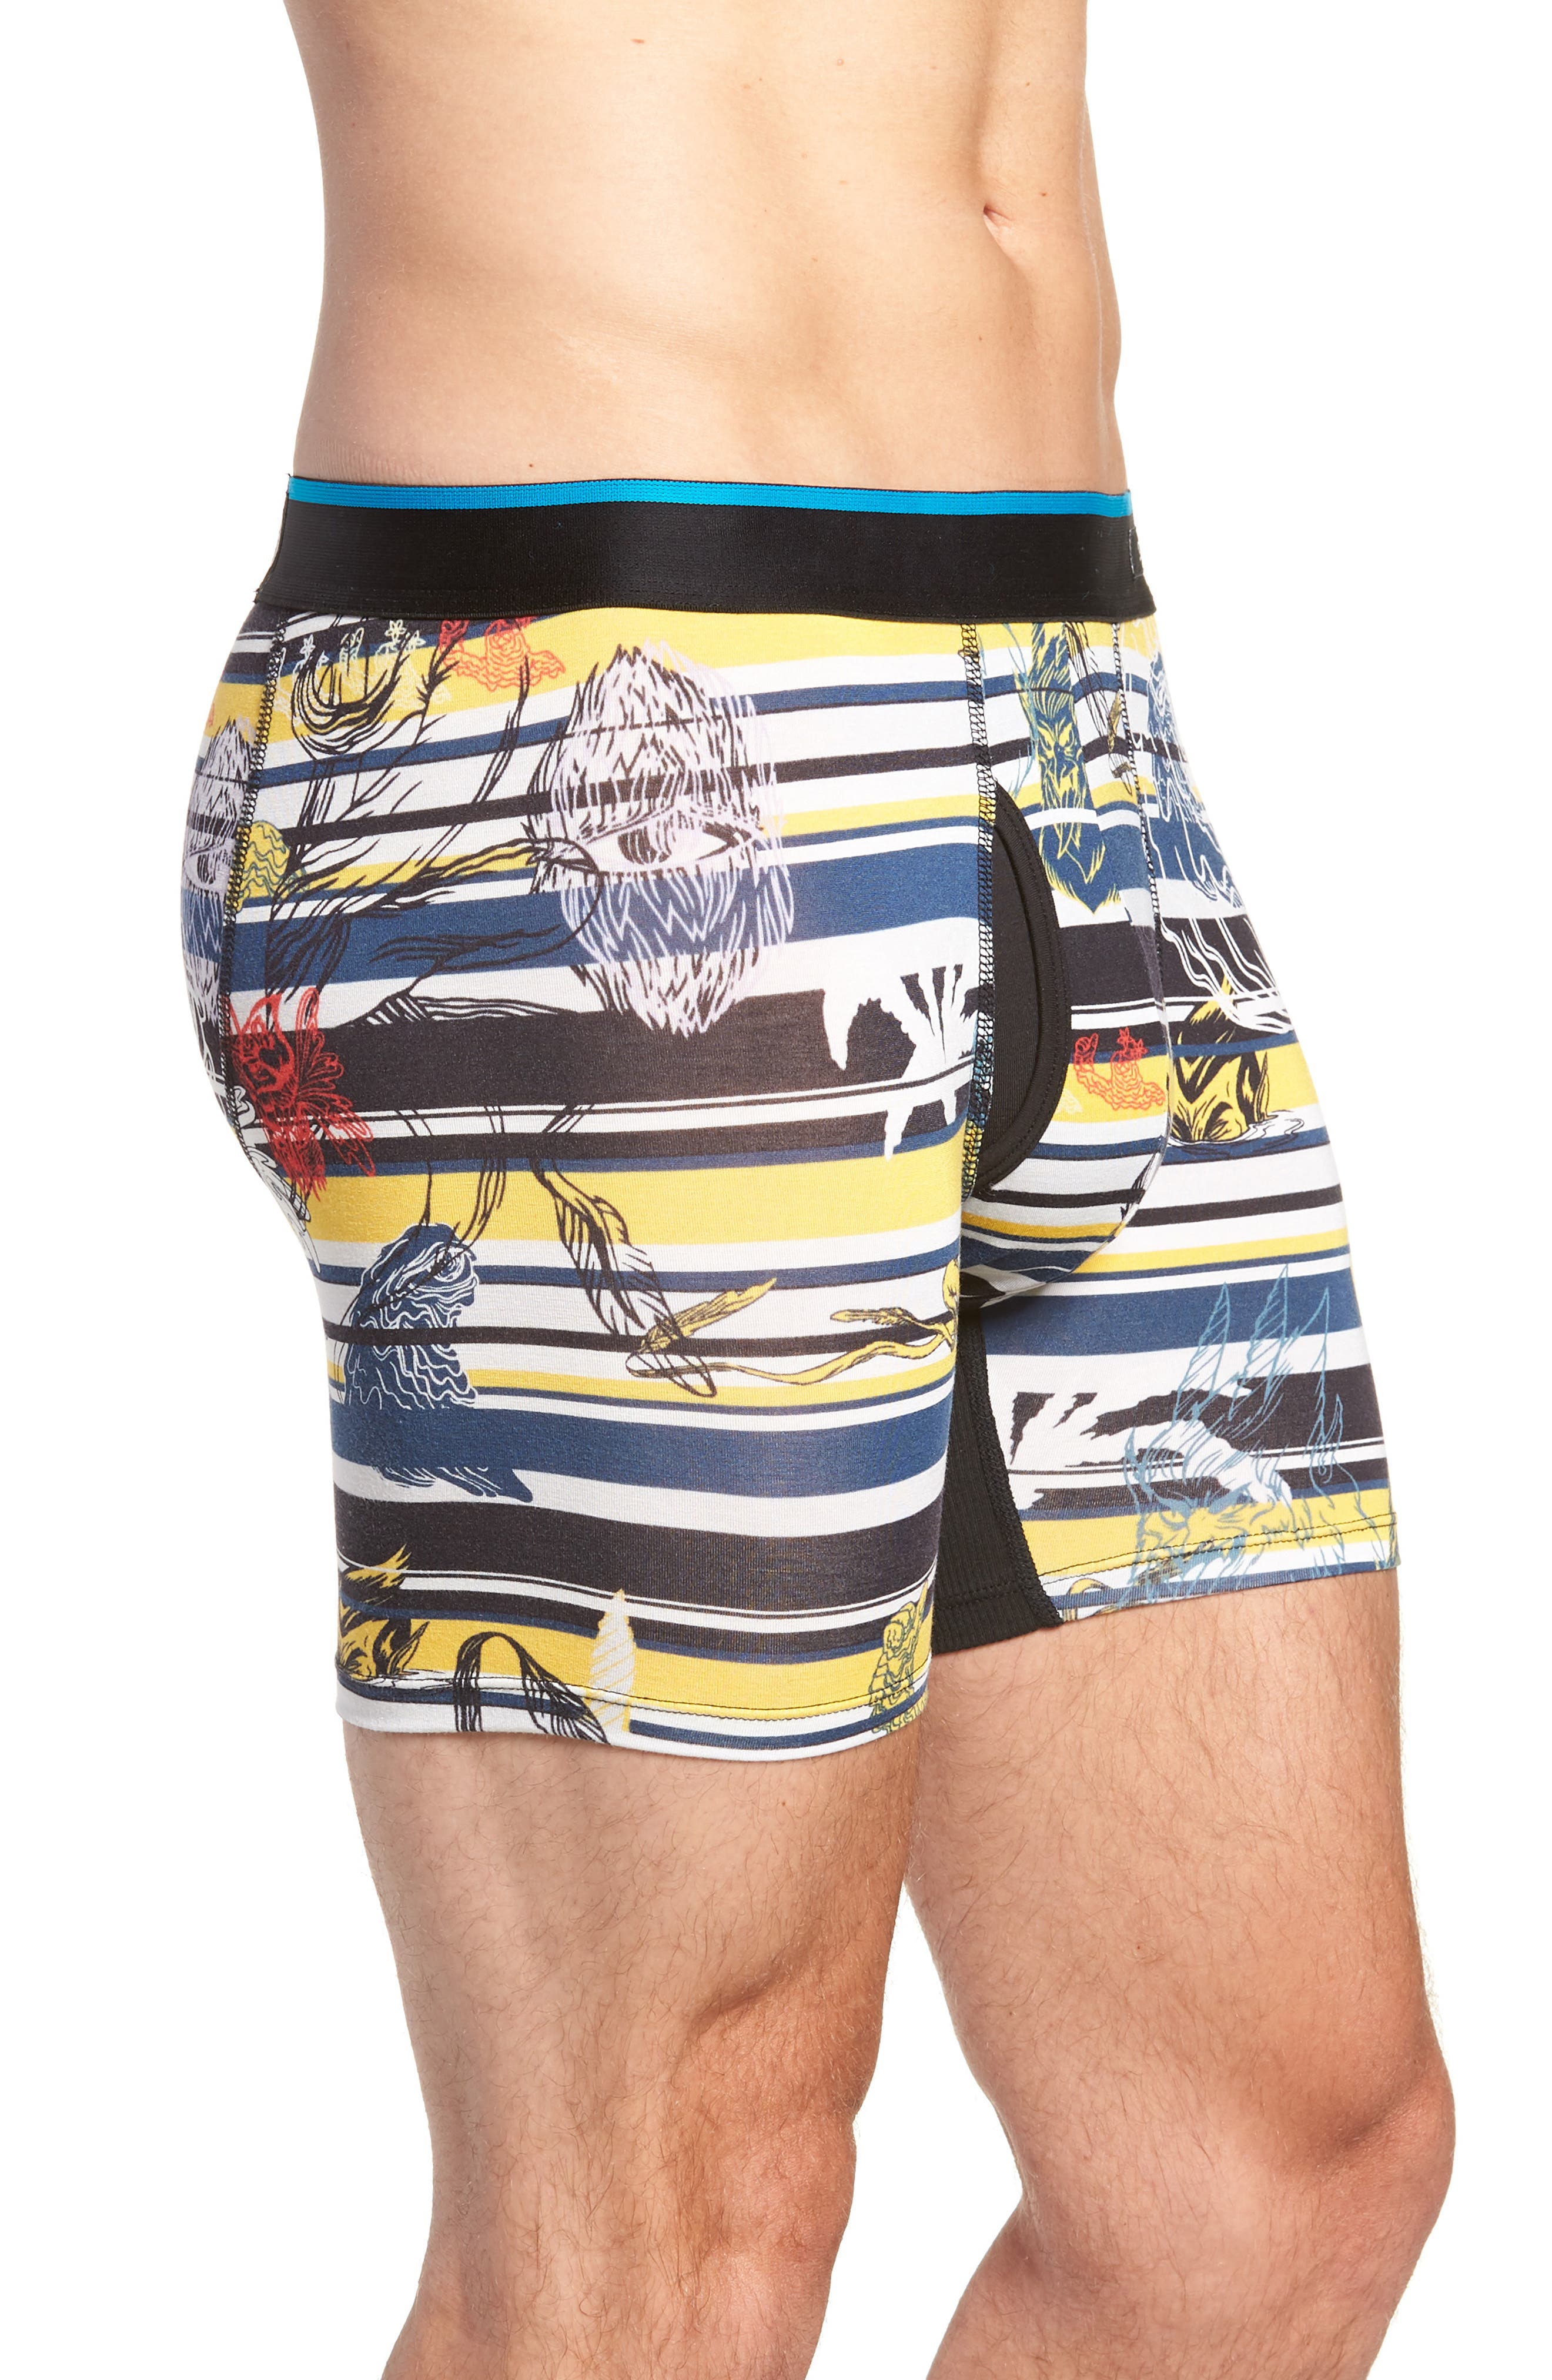 New Mythology Boxer Briefs,                             Alternate thumbnail 3, color,                             YELLOW